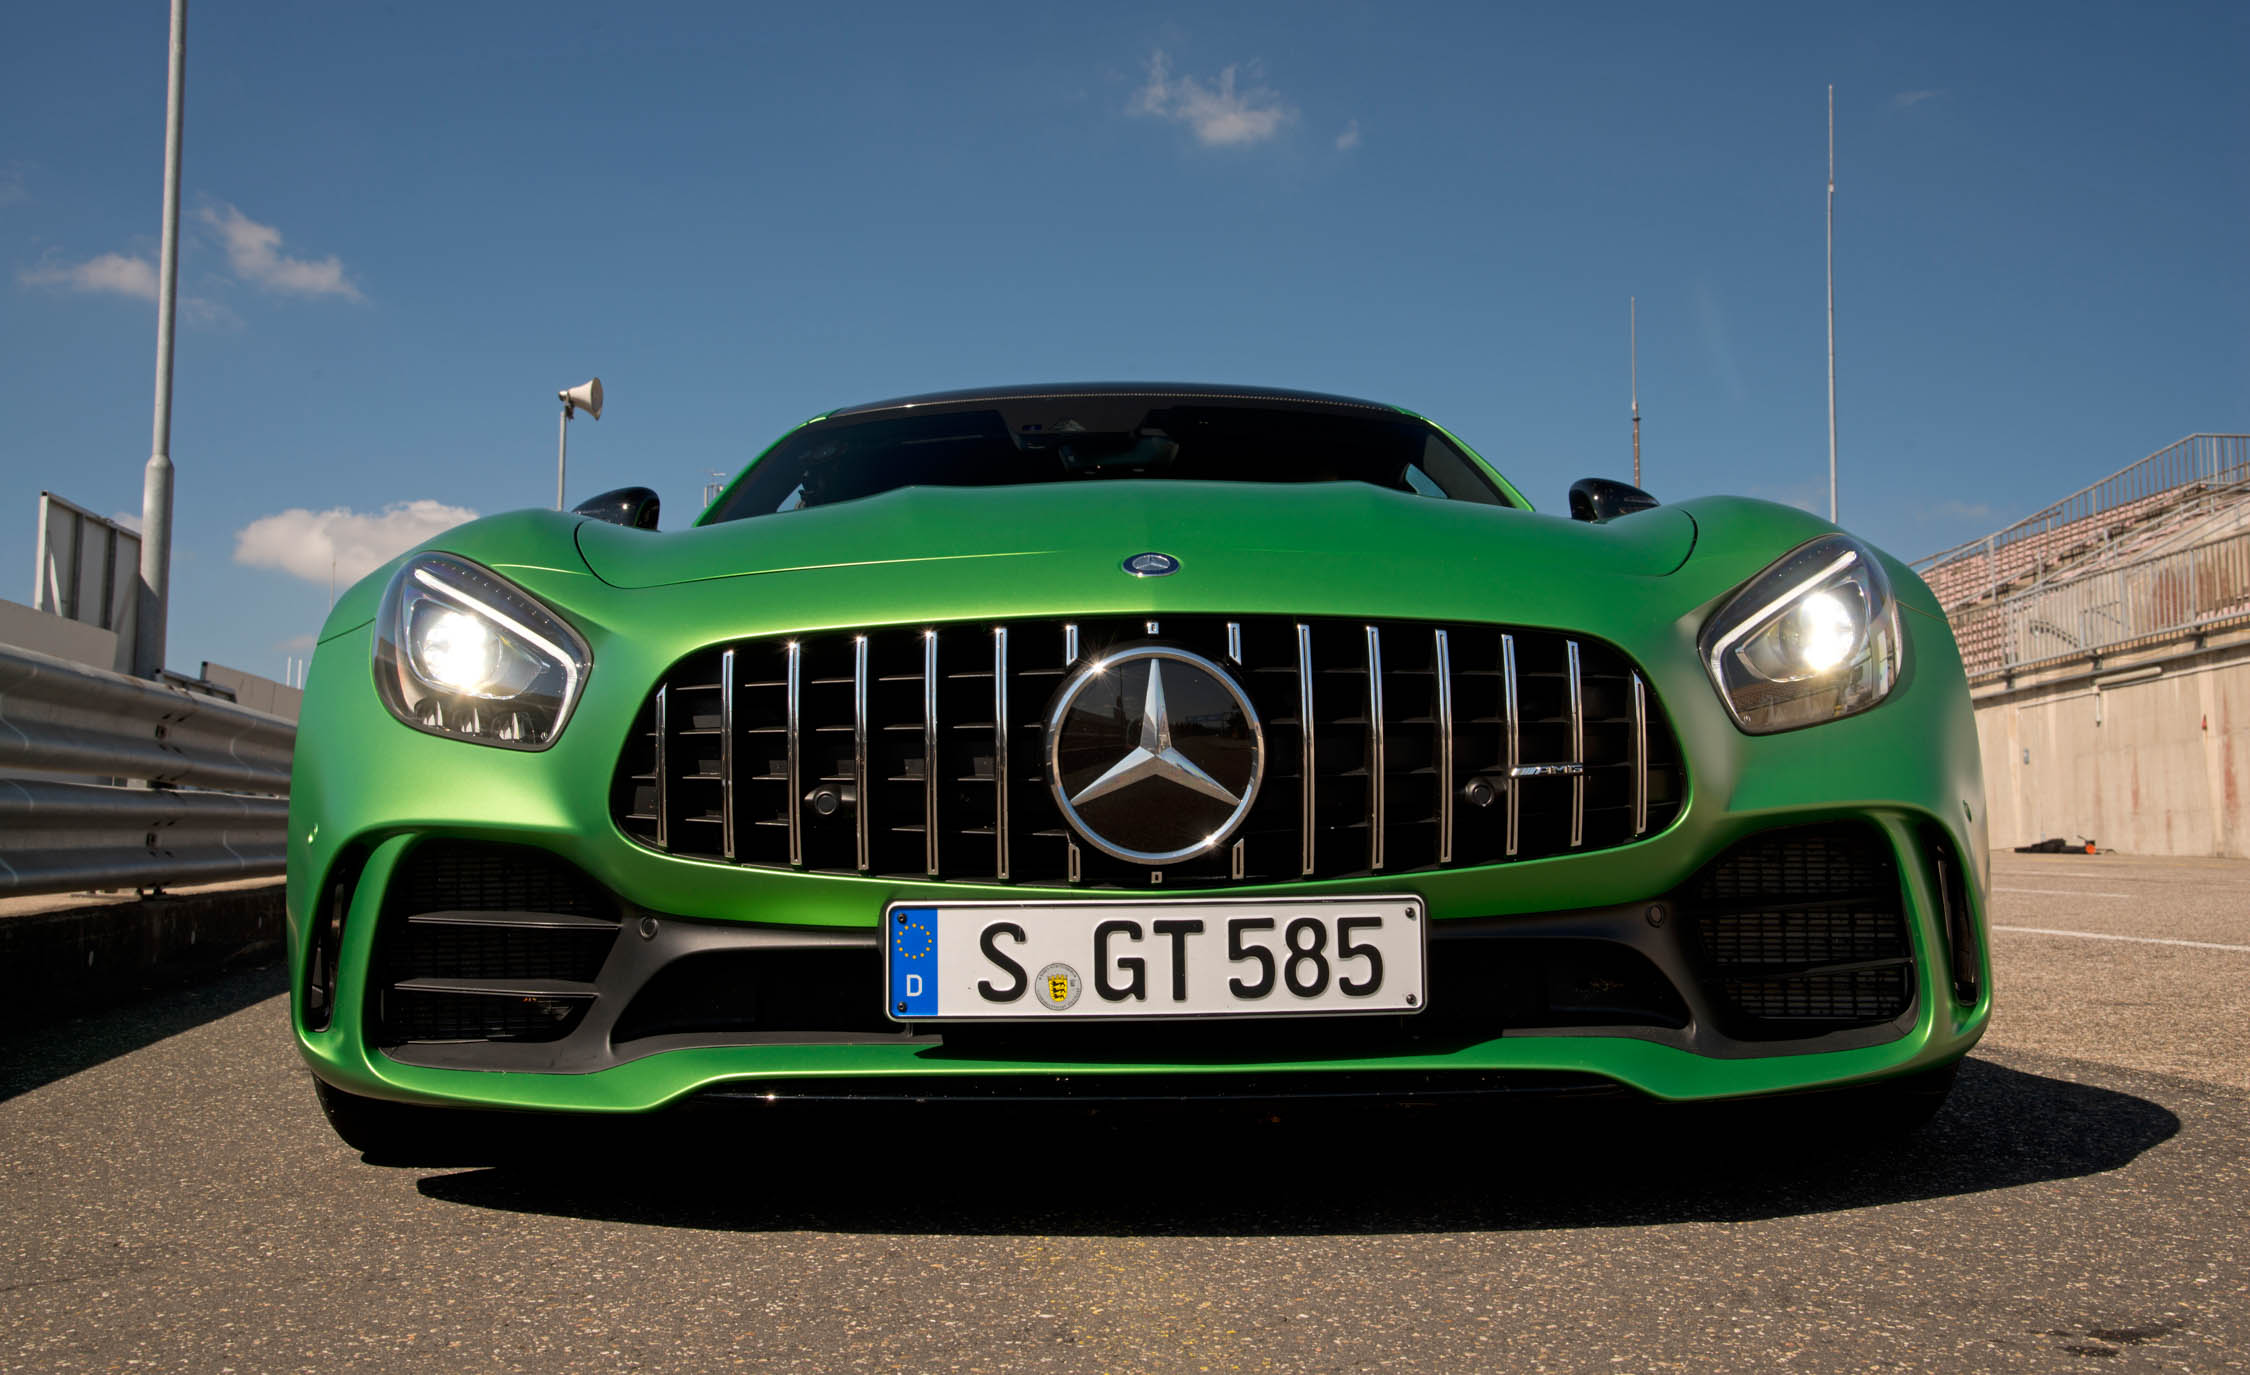 2017 Mercedes Amg Gt R Exterior Front End (Photo 12 of 22)